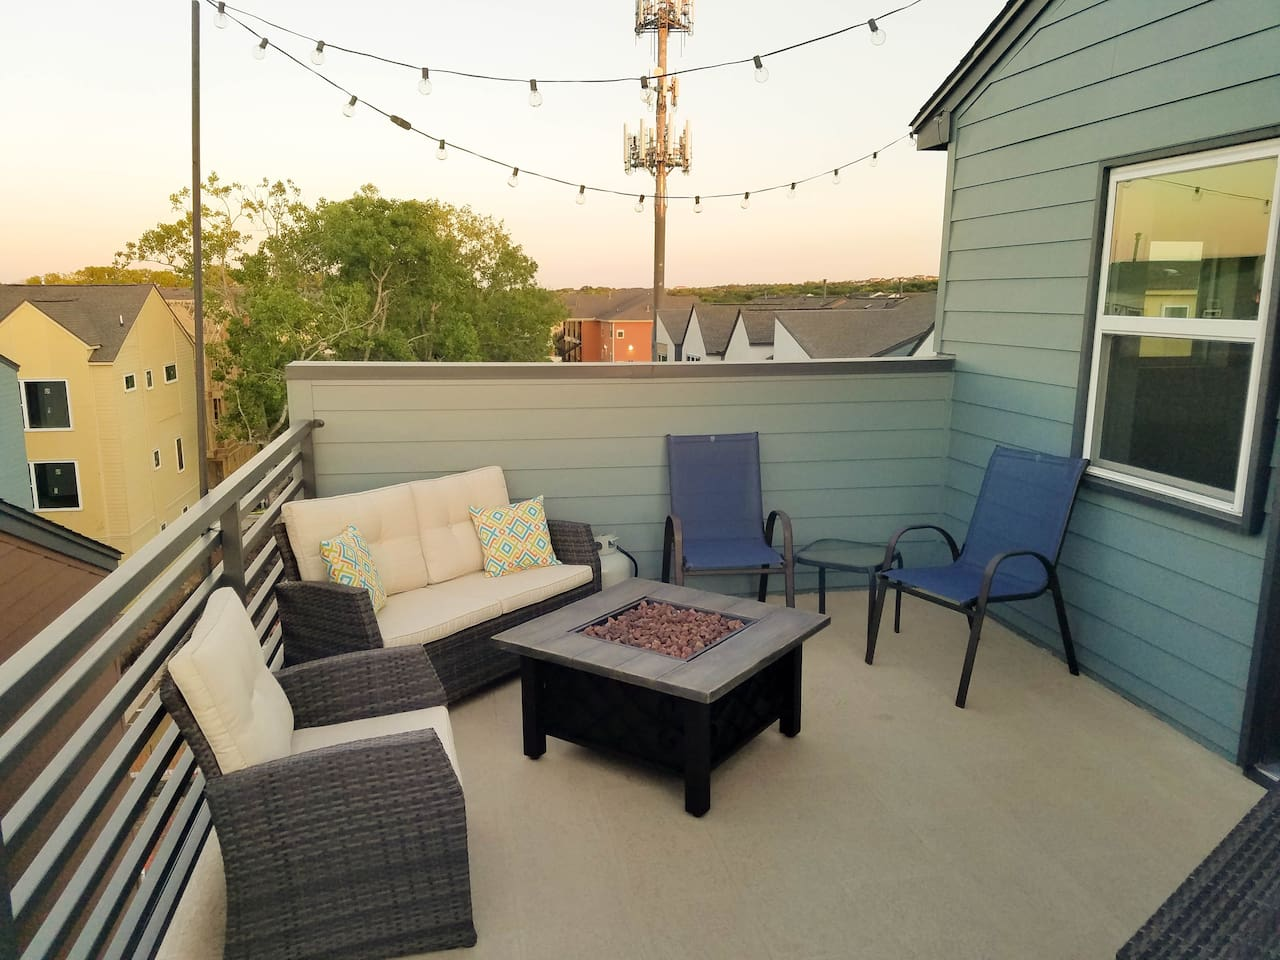 Rooftop patio with firepit